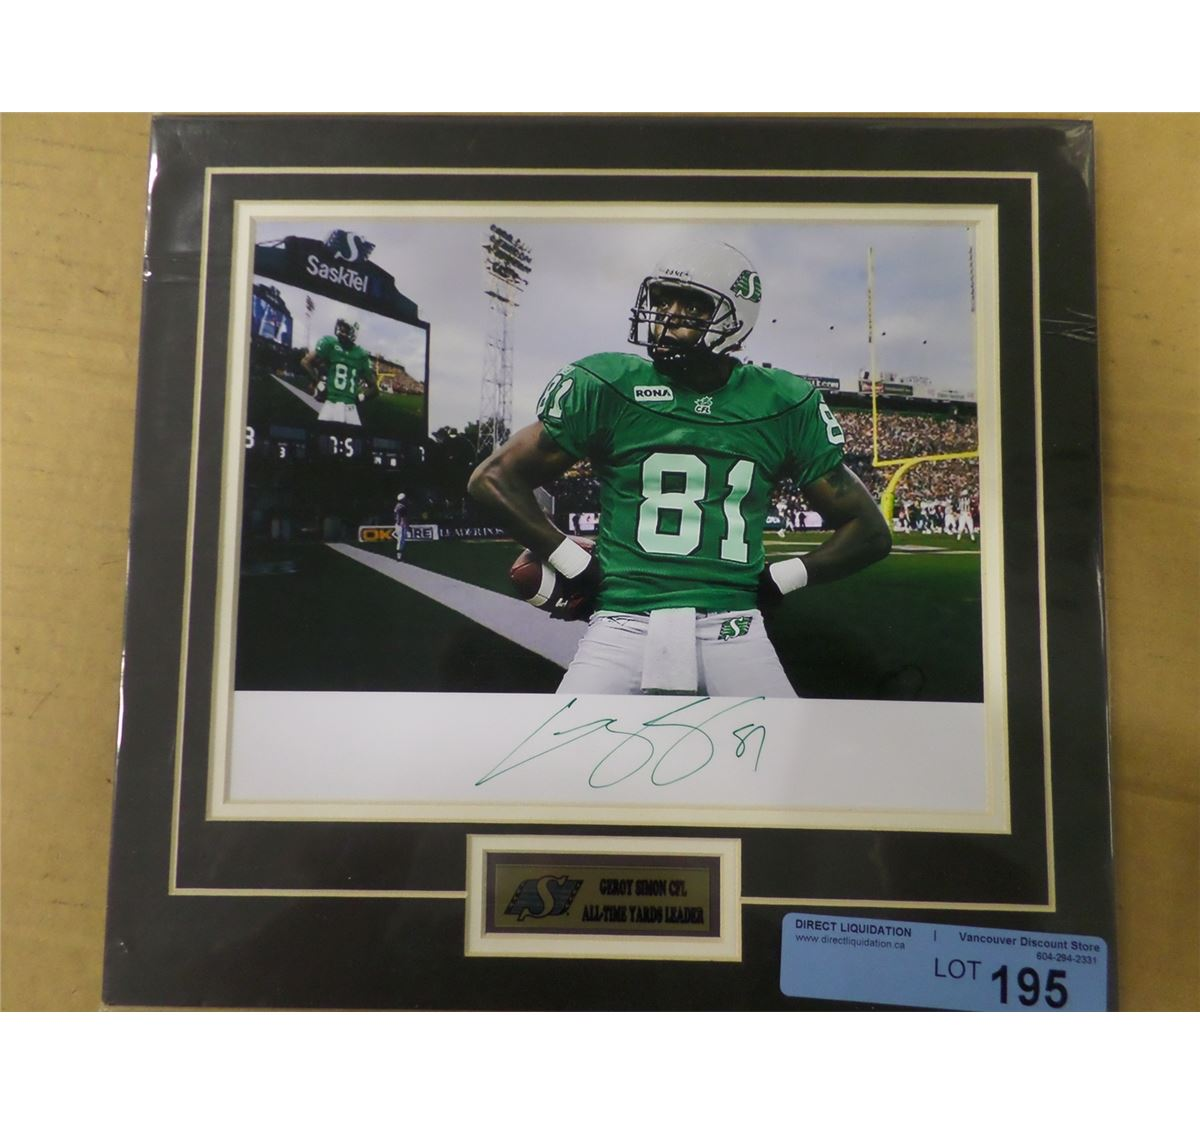 Signed Matted Geroy Simon Photo 8x10